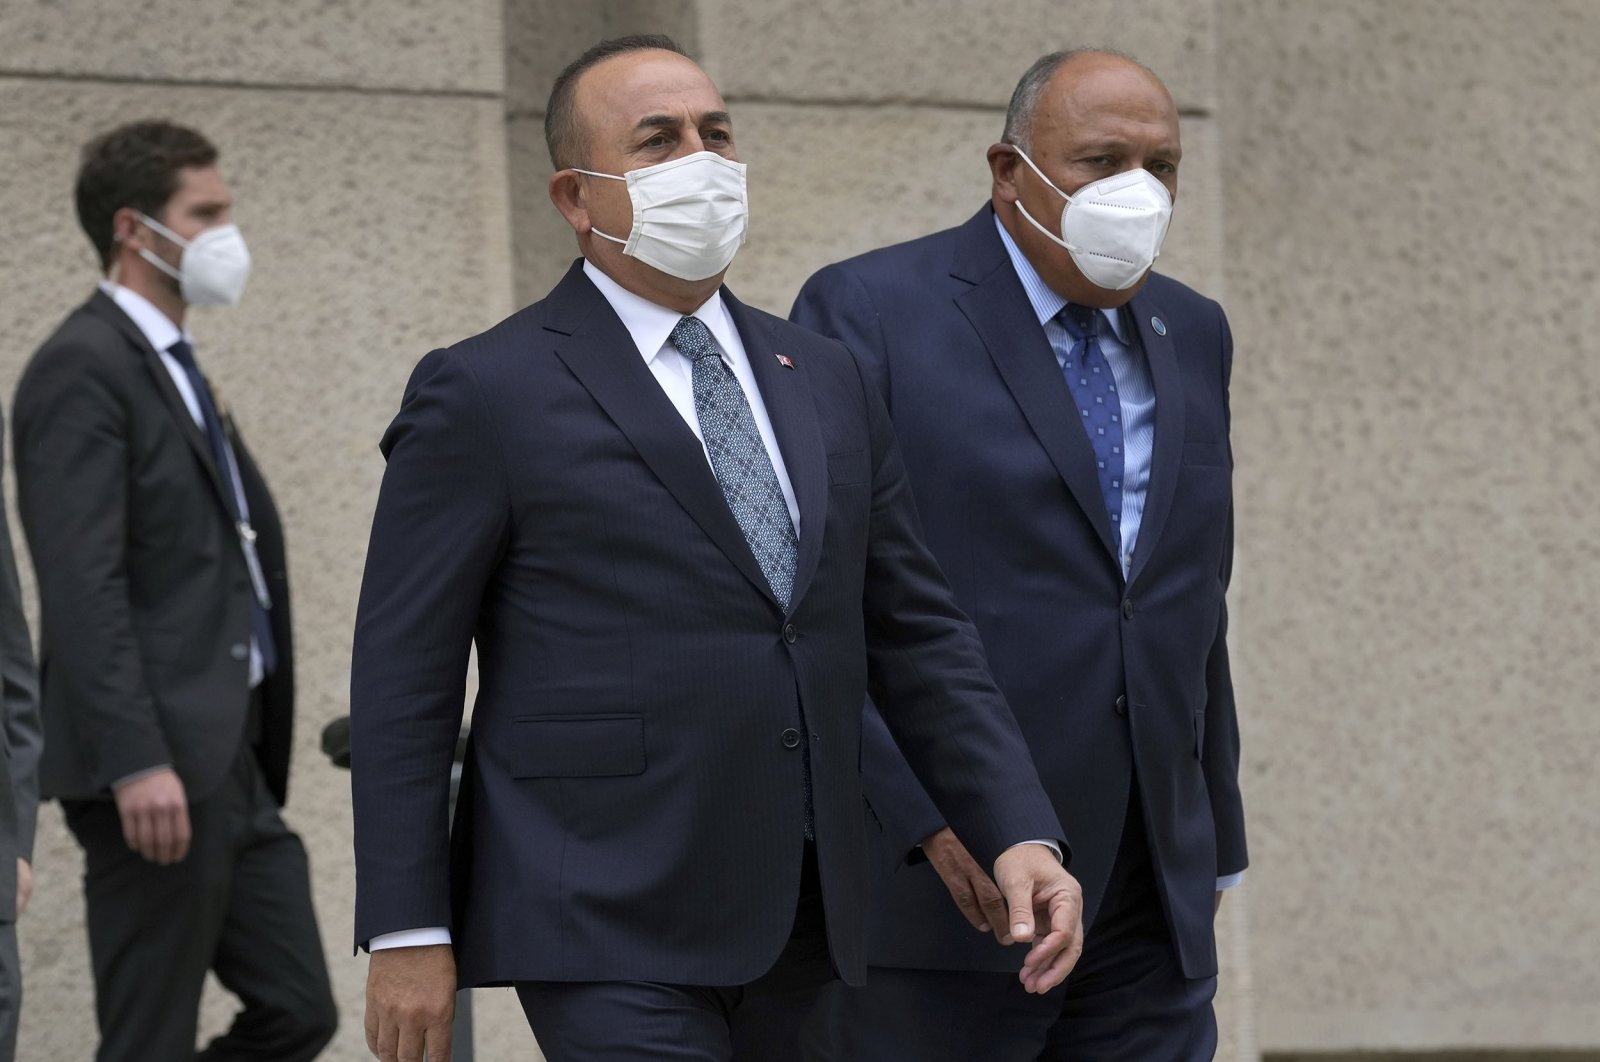 Turkey's Foreign Minister Mevlüt Çavuşoğlu (L) and his counterpart from Egypt, Sameh Shoukry (R) arrive for a group photo during the Second Berlin Conference on Libya at the foreign office in Berlin, Germany, June 23, 2021. (AP Photo)